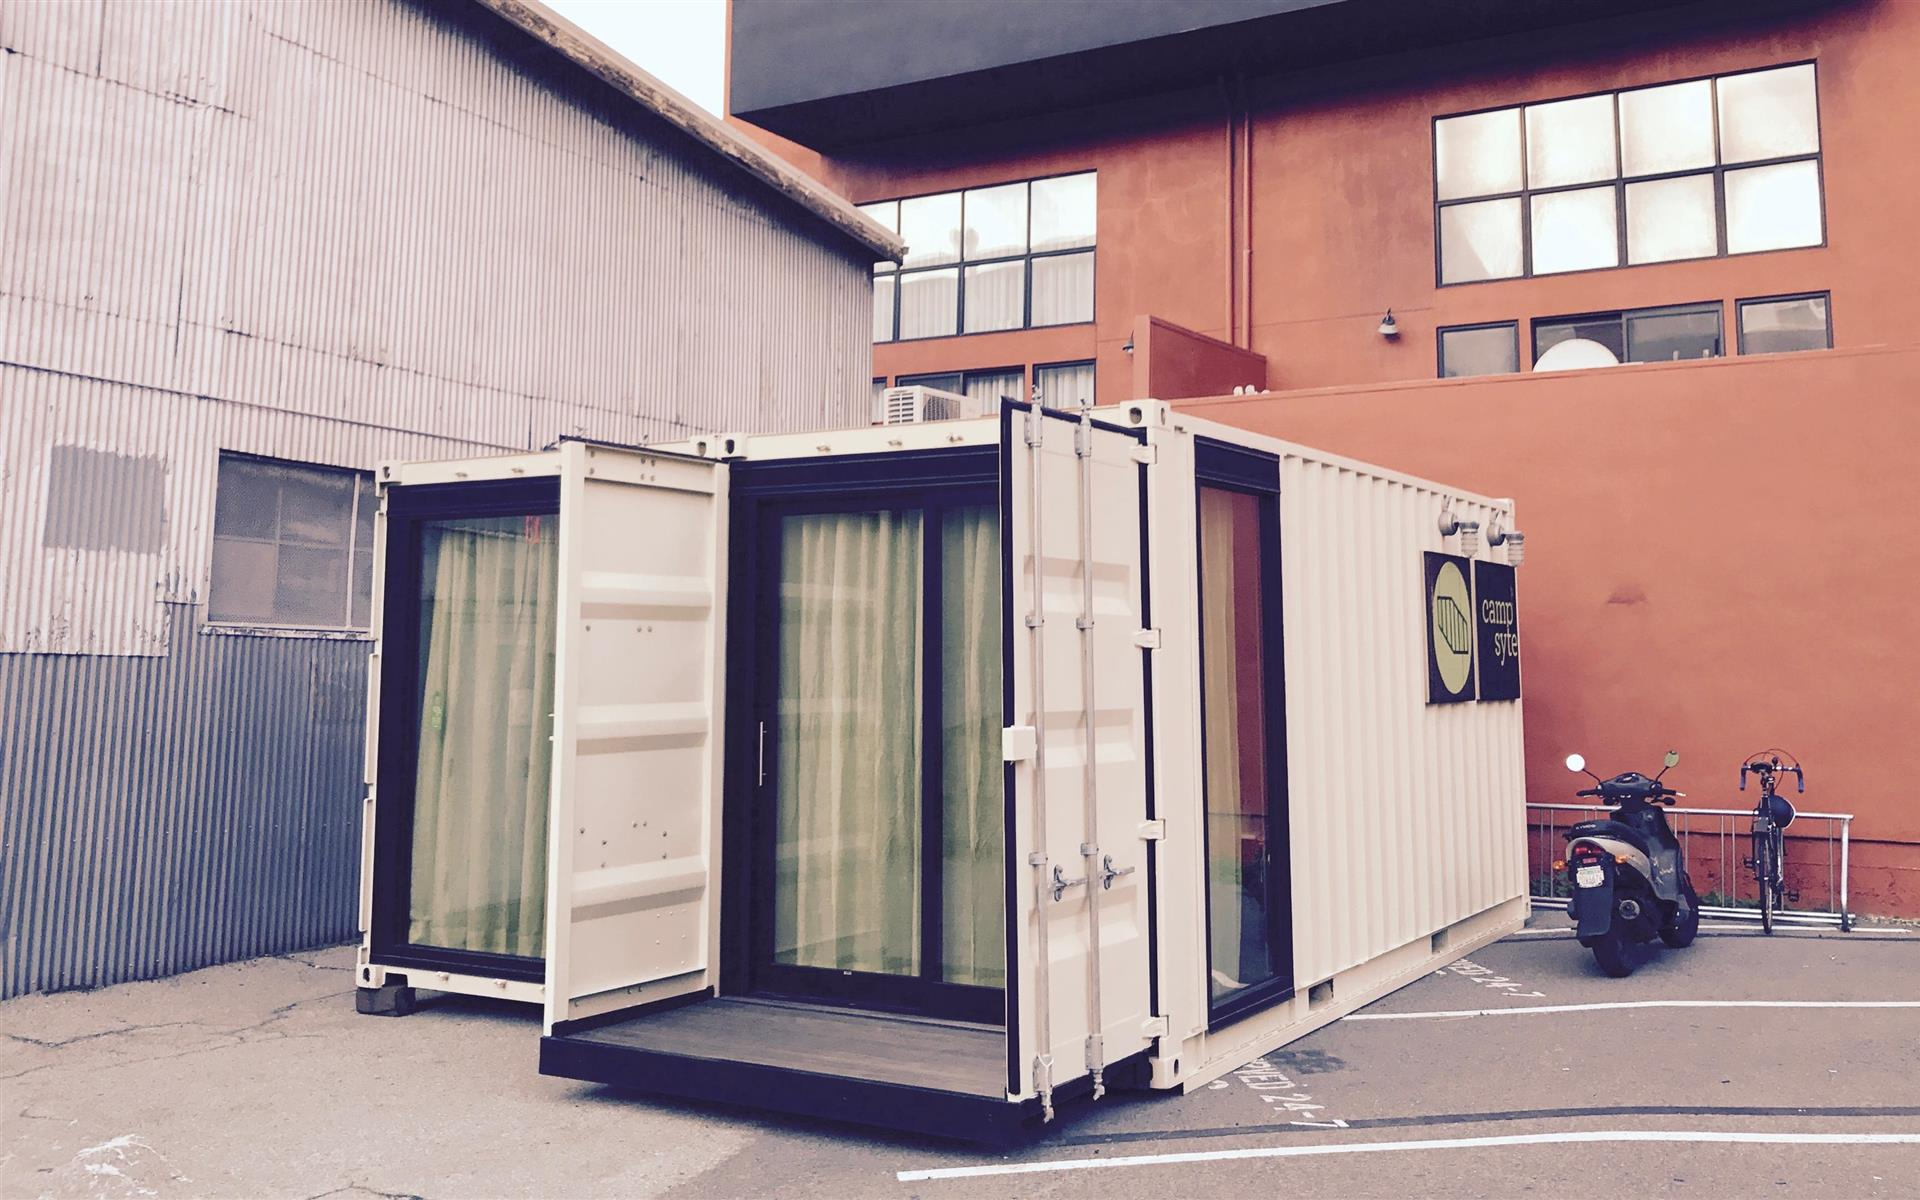 Campsyte - Team office in SOMA cargo containers